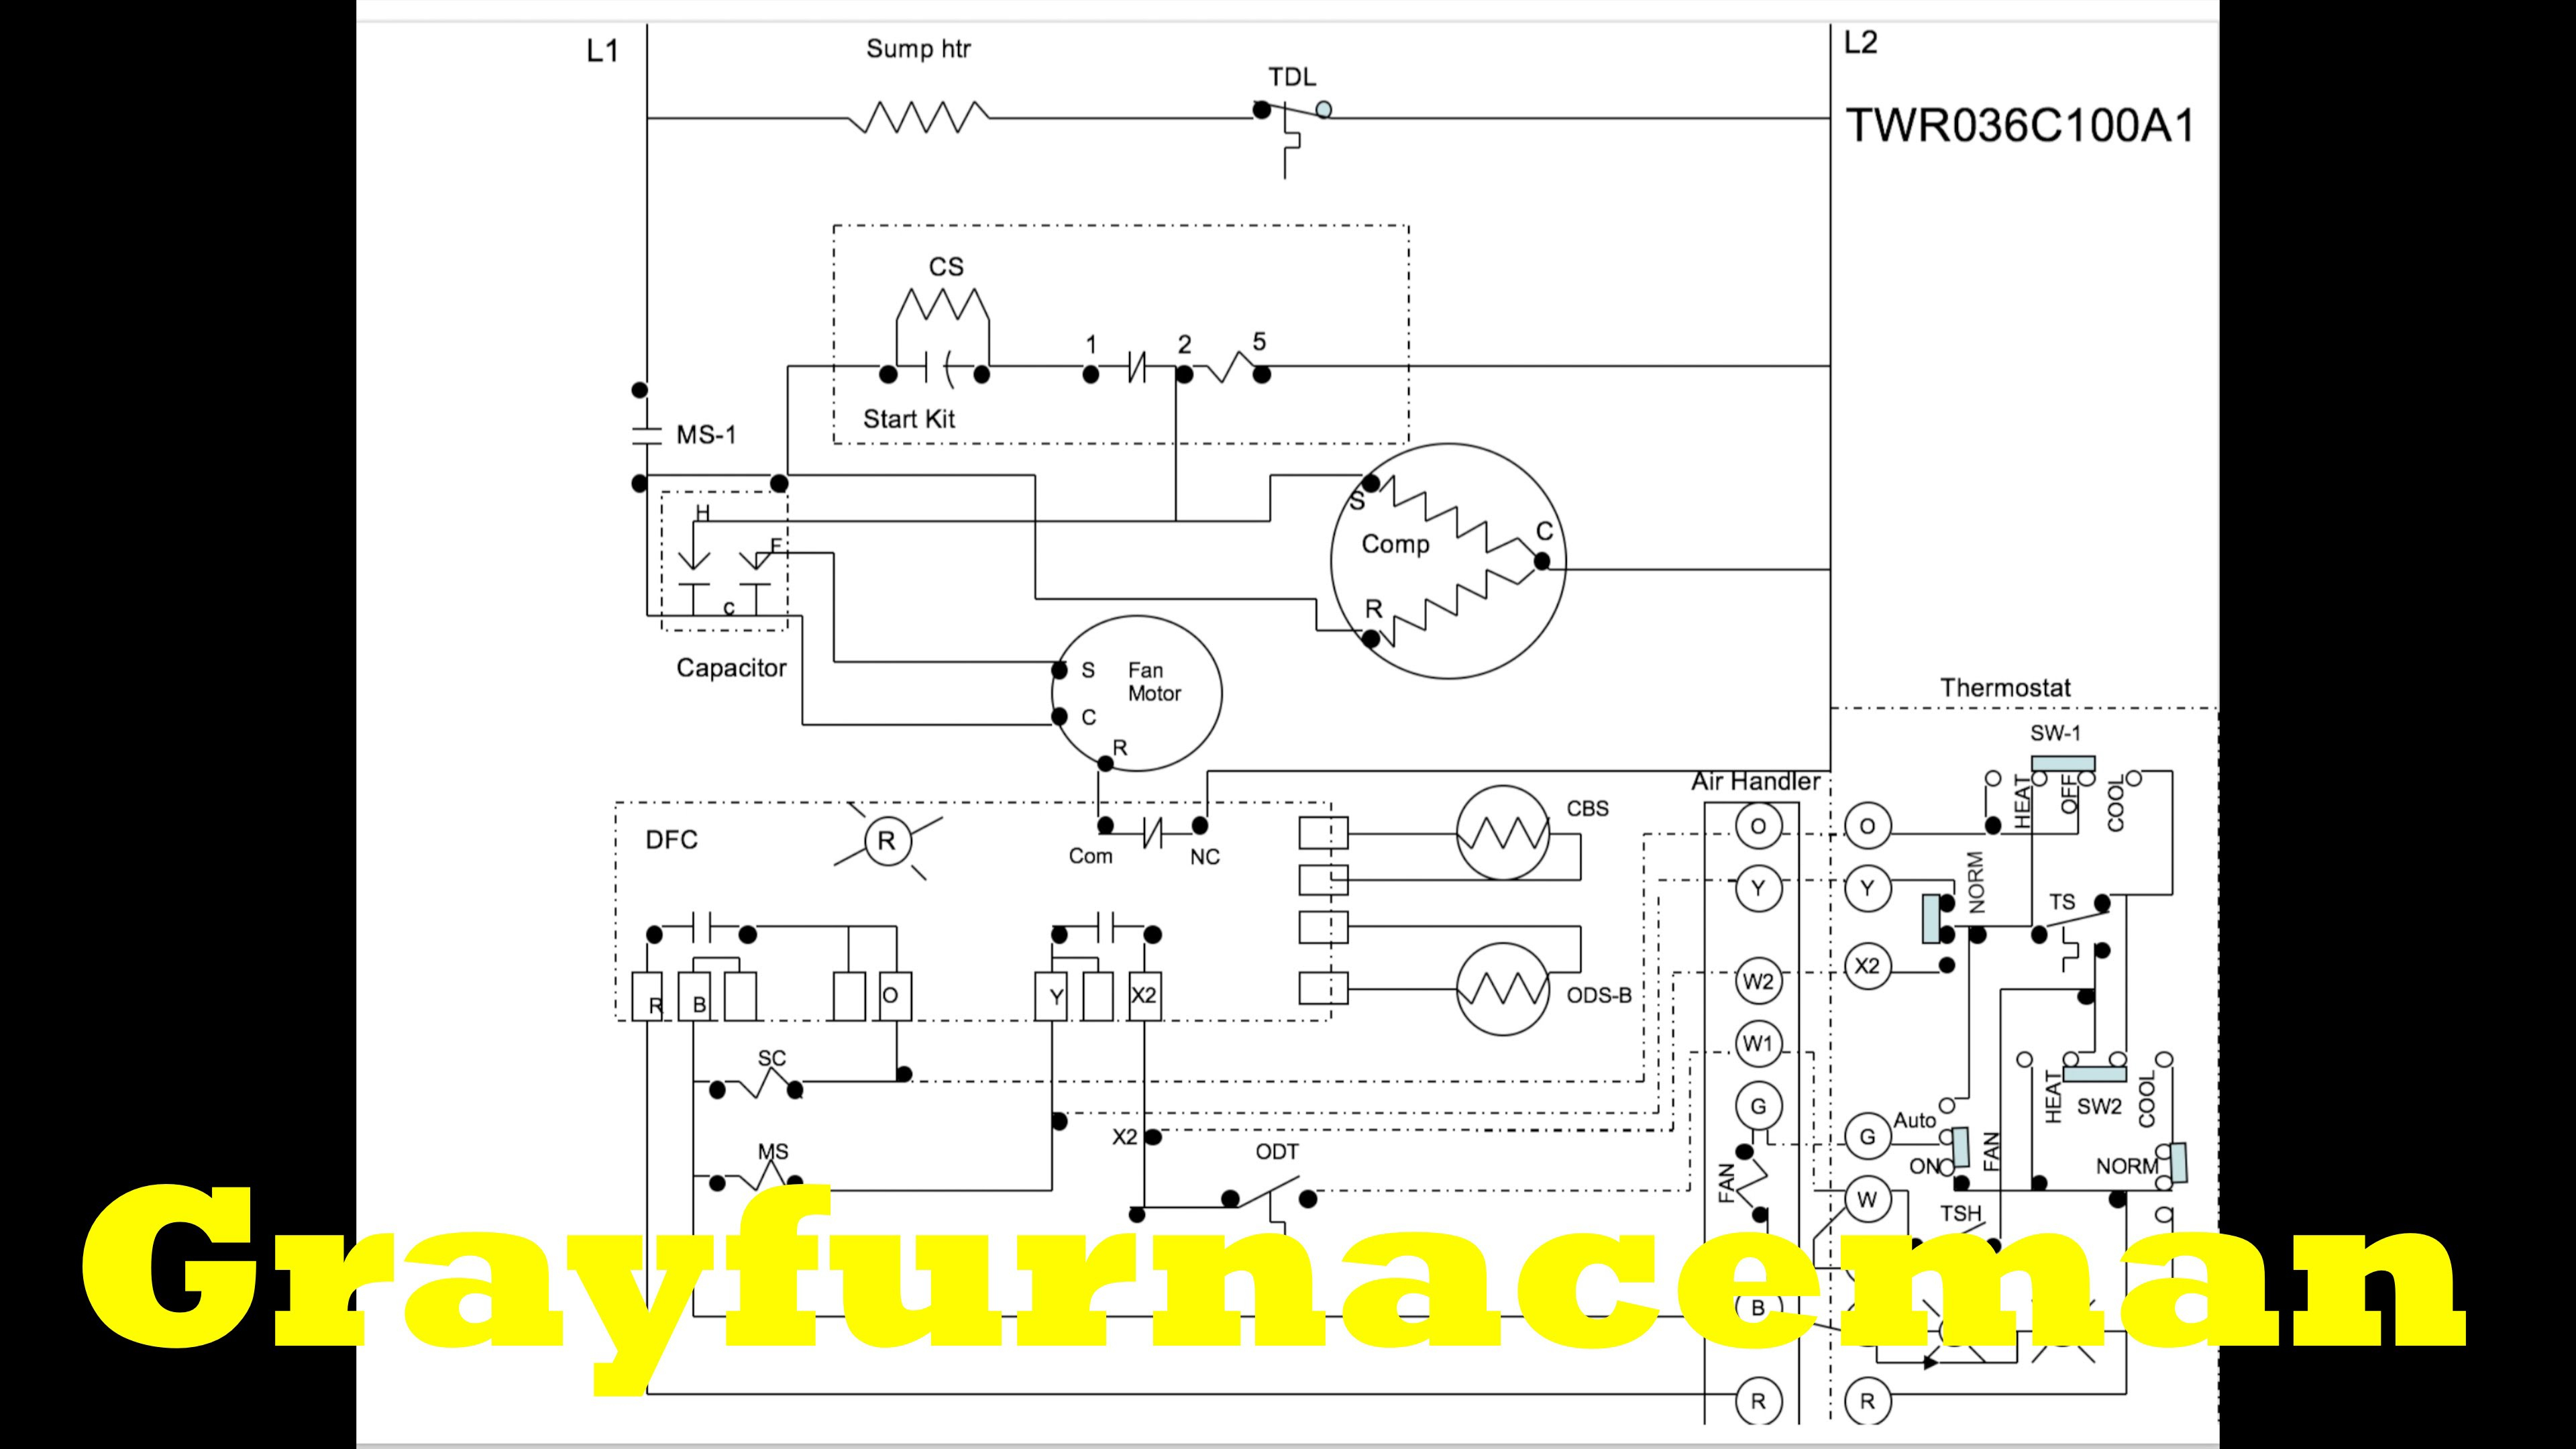 Heat Pump Wiring Diagram For Defrost on